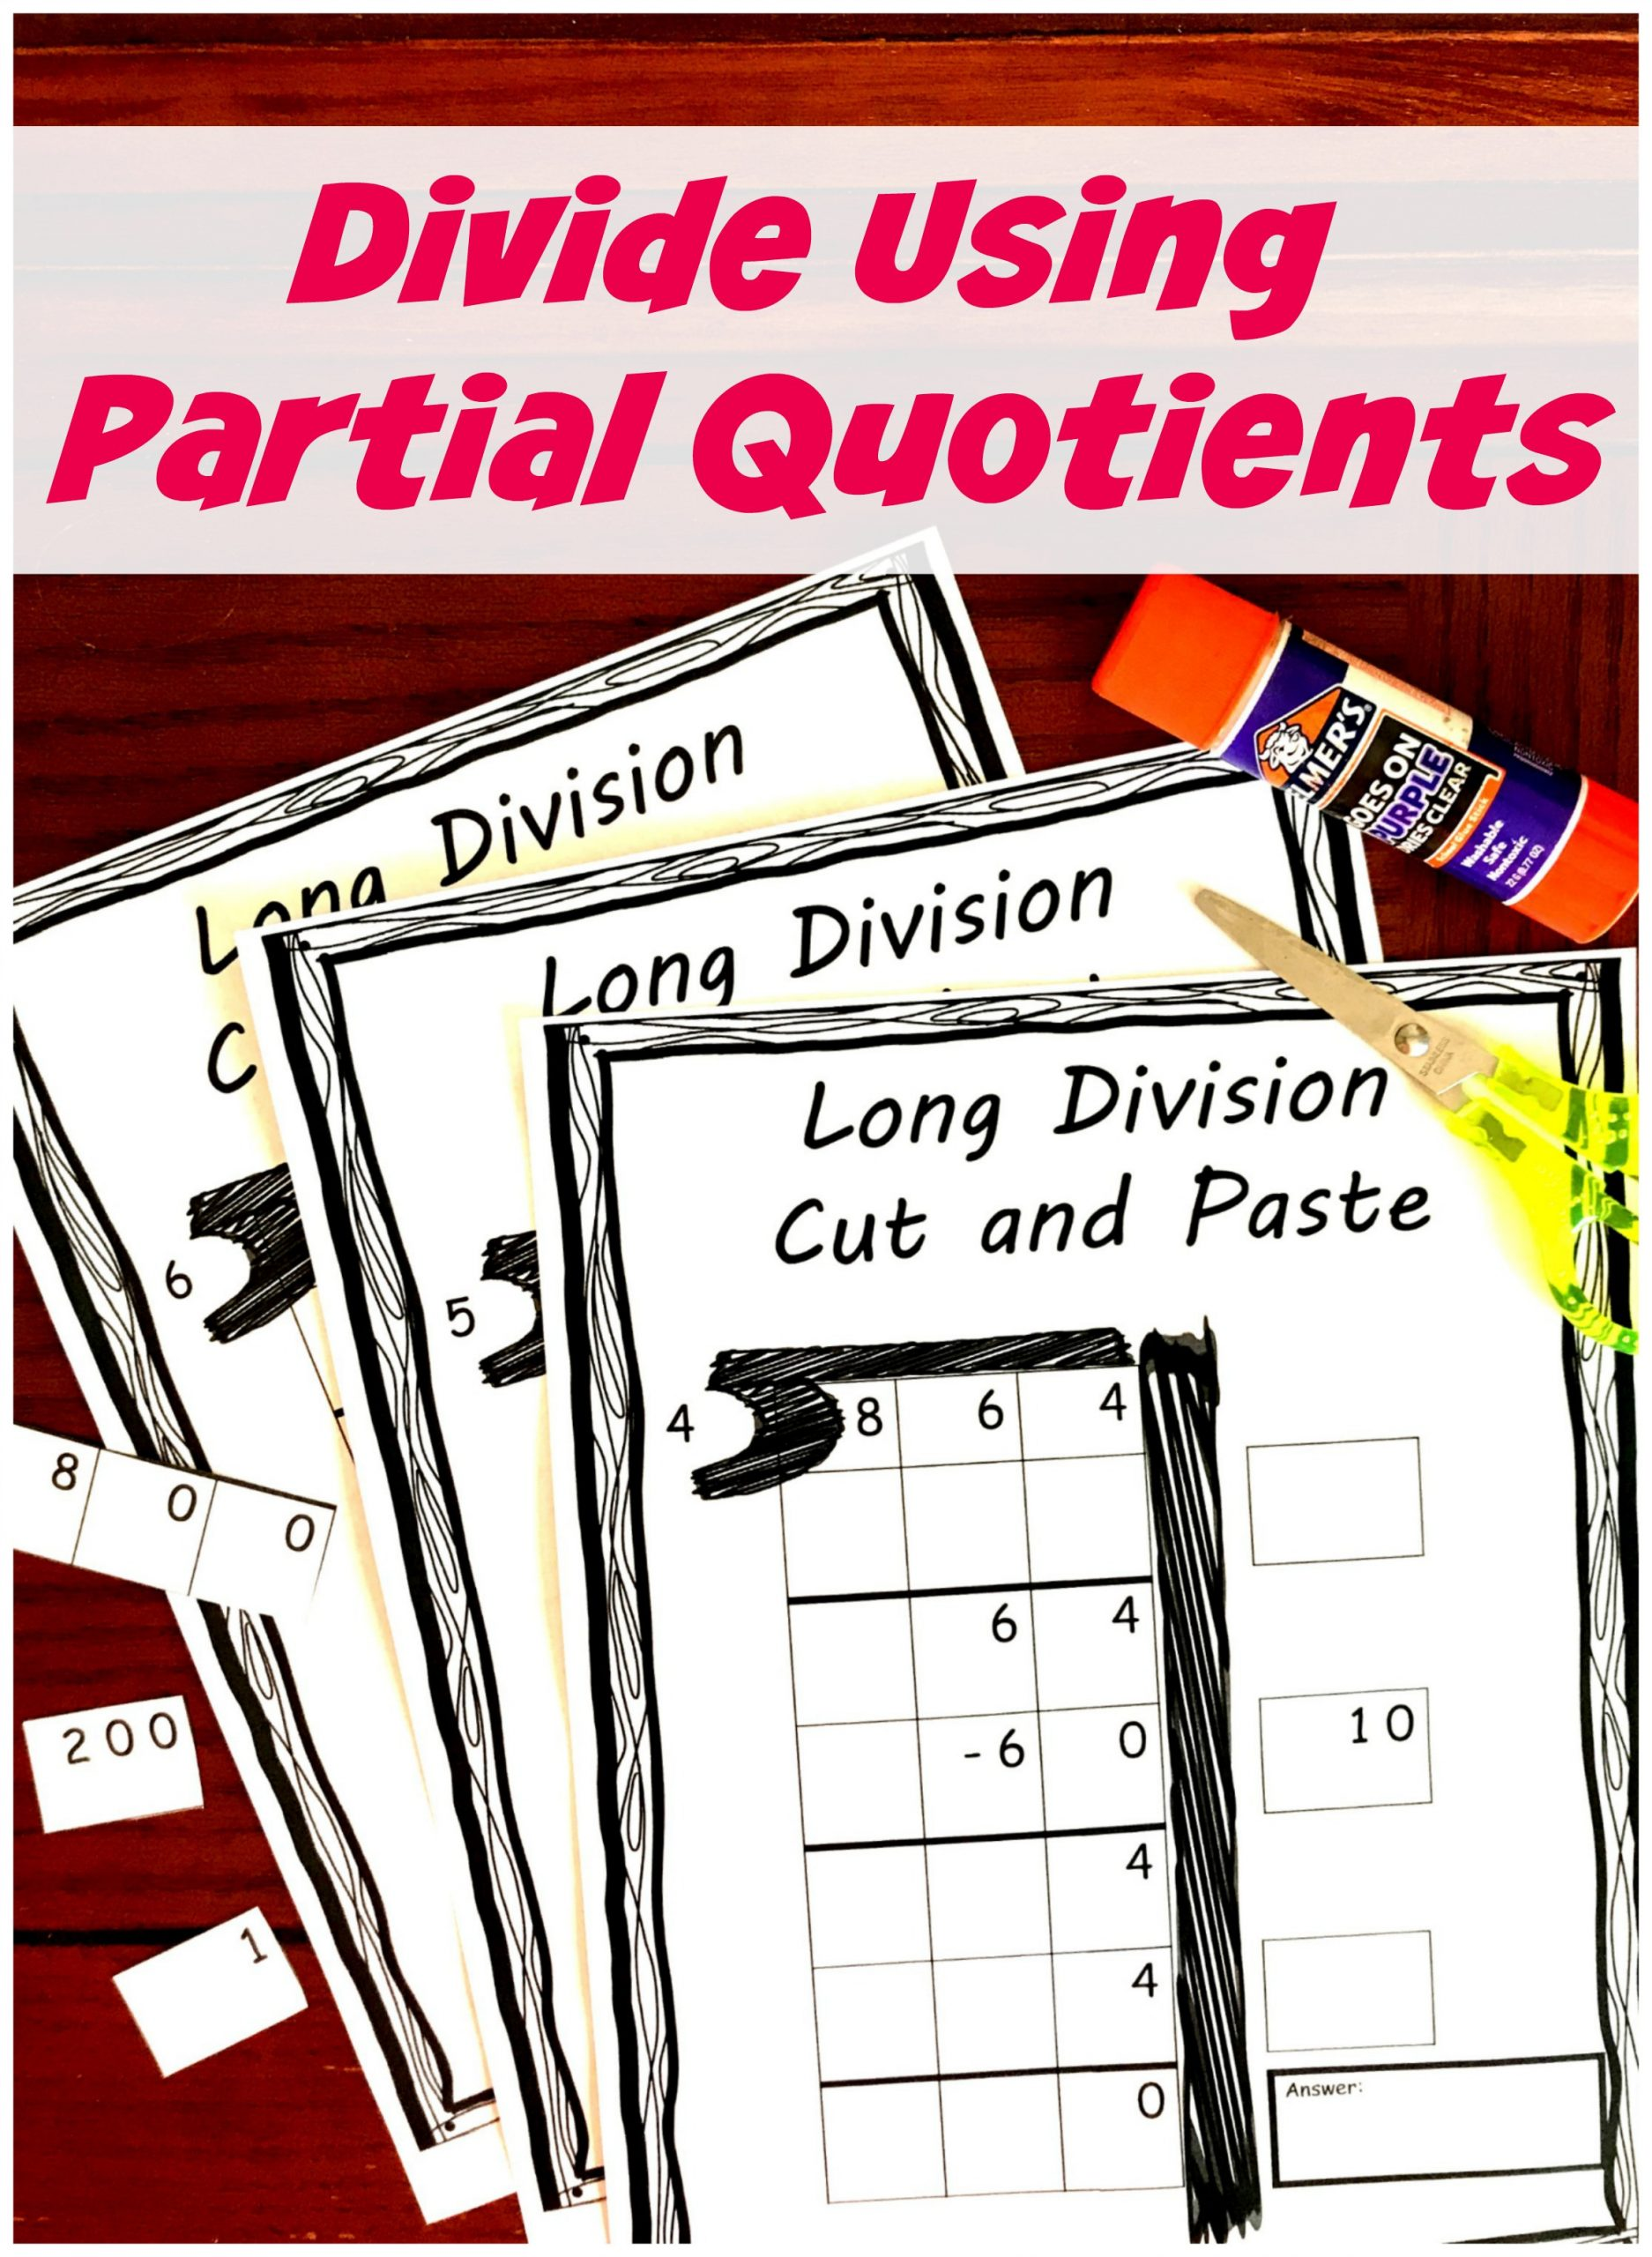 Partial Quotients Worksheet Free Divide Using Partial Quotients Cut and Paste Activity